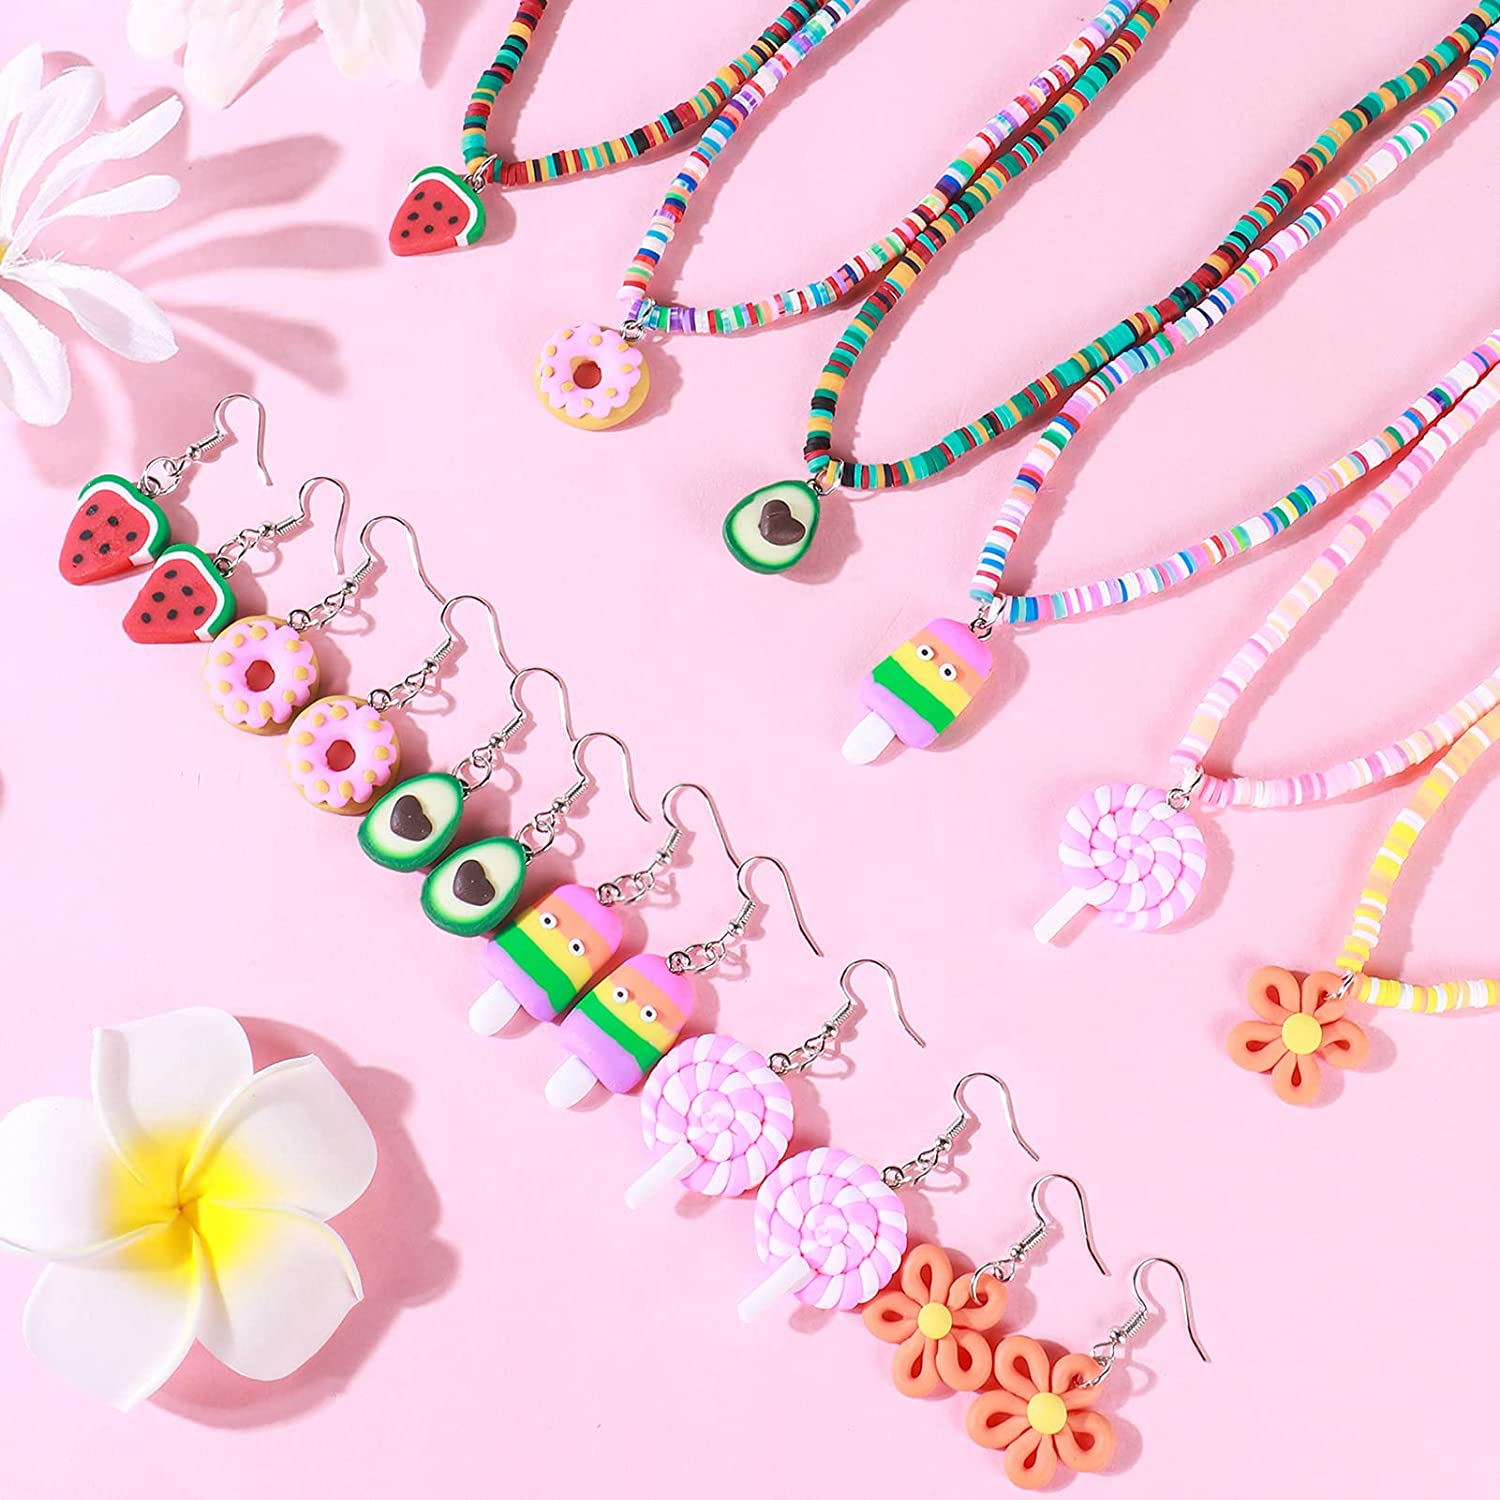 G.C 6 Sets Polymer Clay Rainbow Necklace and Drop Dangle Earrings with Cute Watermelon Ice Cream Donuts Flower Lollipop Charms Toy Gift Party Favors Dress up Surfer Jewelry for Girl Teen Women